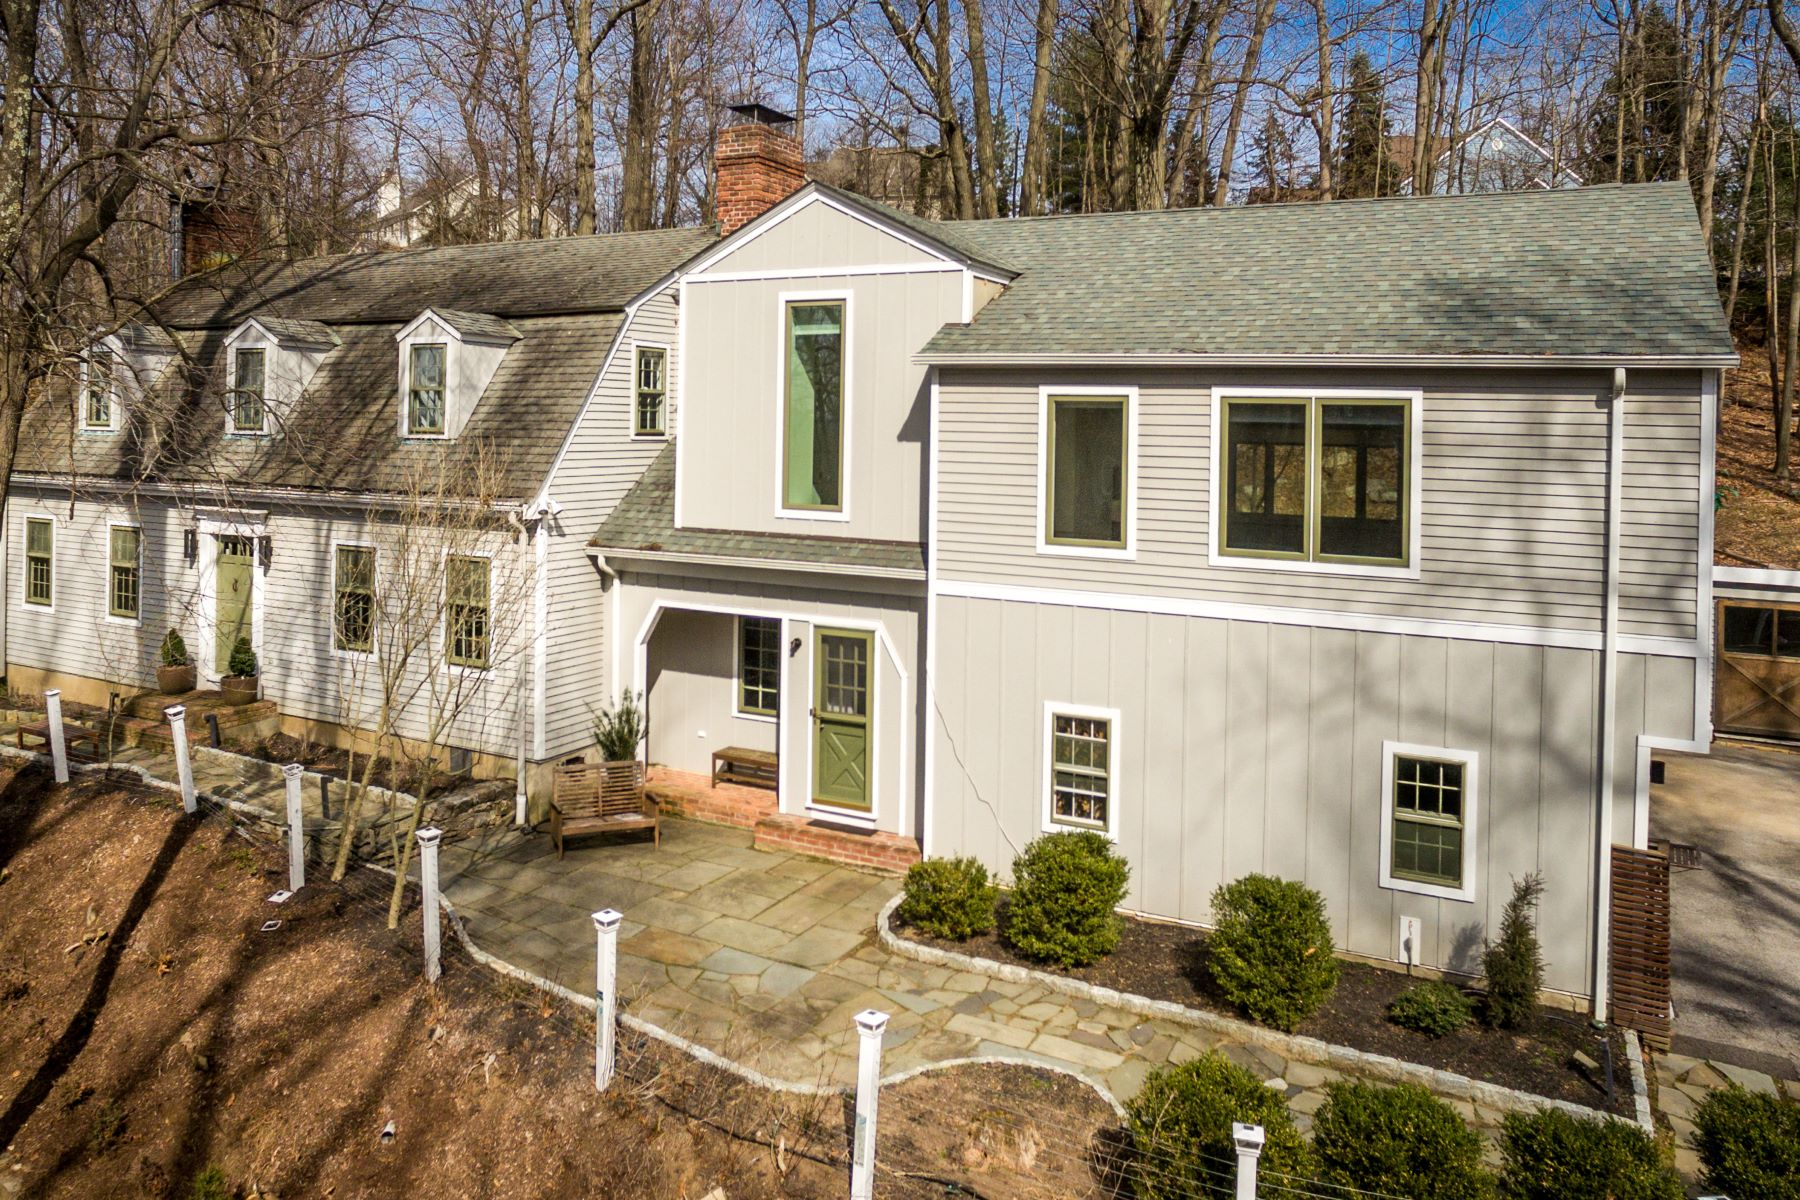 Single Family Homes for Active at 22 Lewis Road Irvington, New York 10533 United States